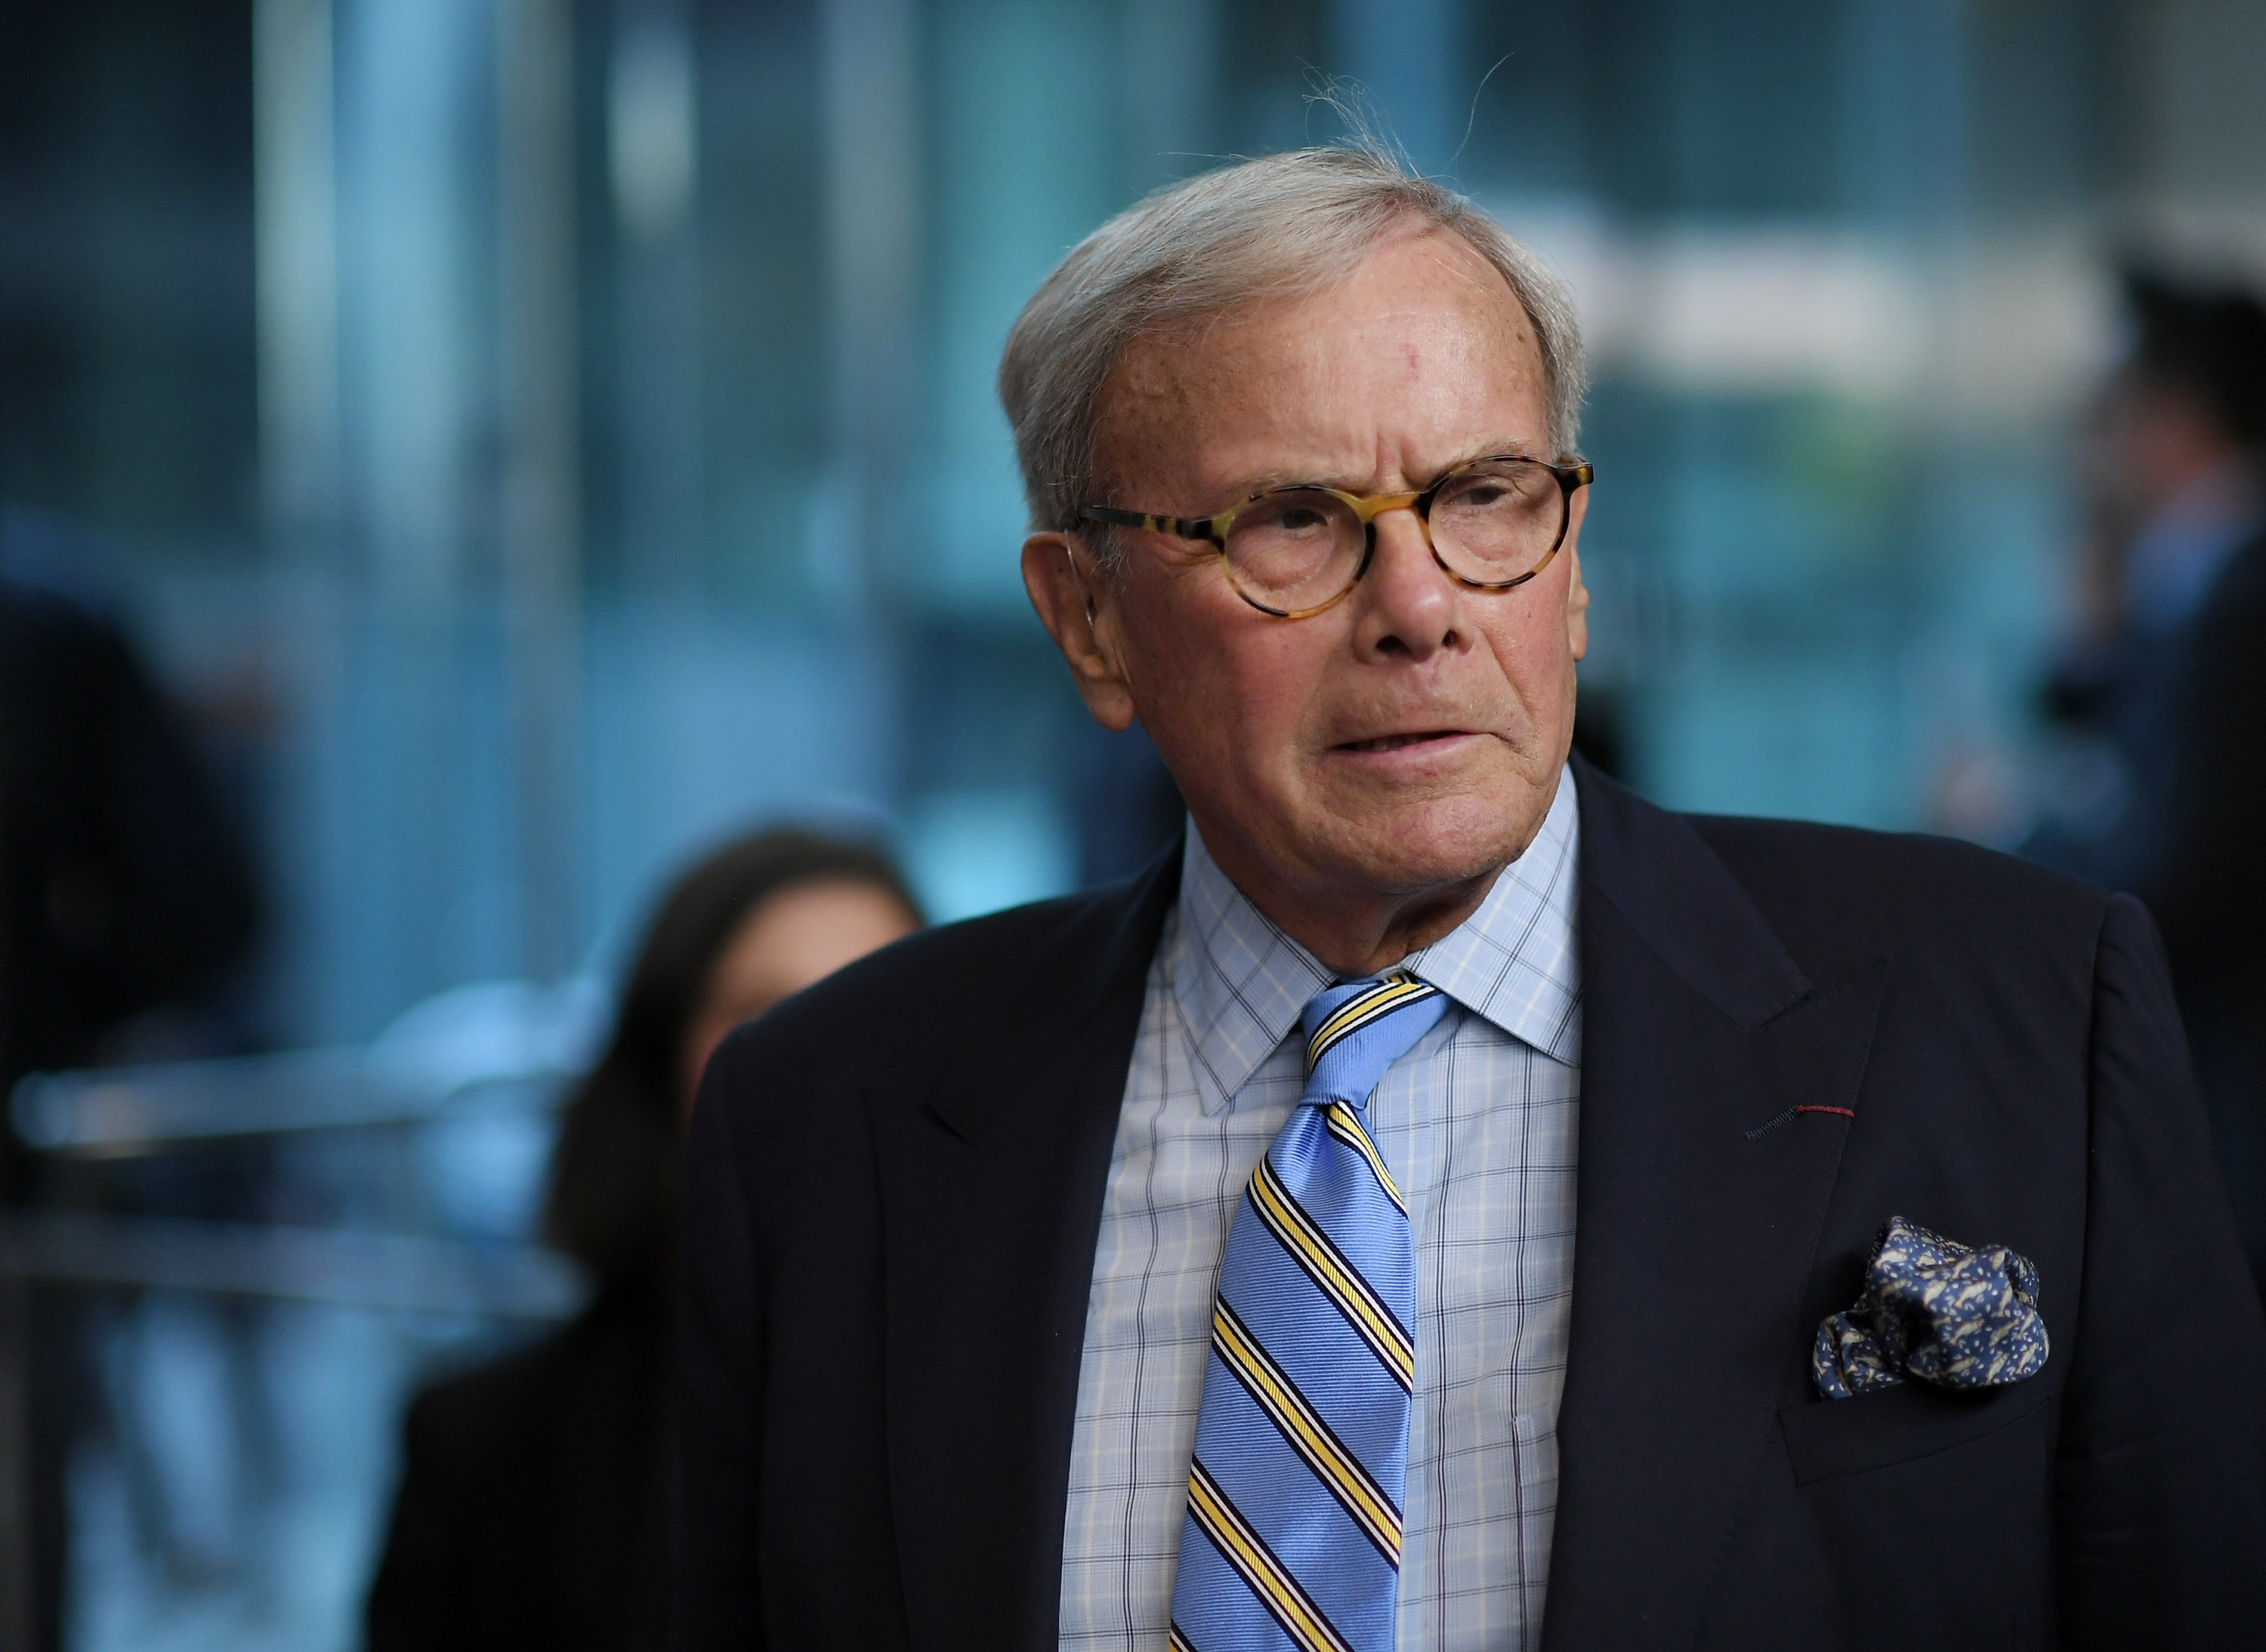 Tom Brokaw Apologizes After Saying Latinos Need to Do a Better Job at Assimilating